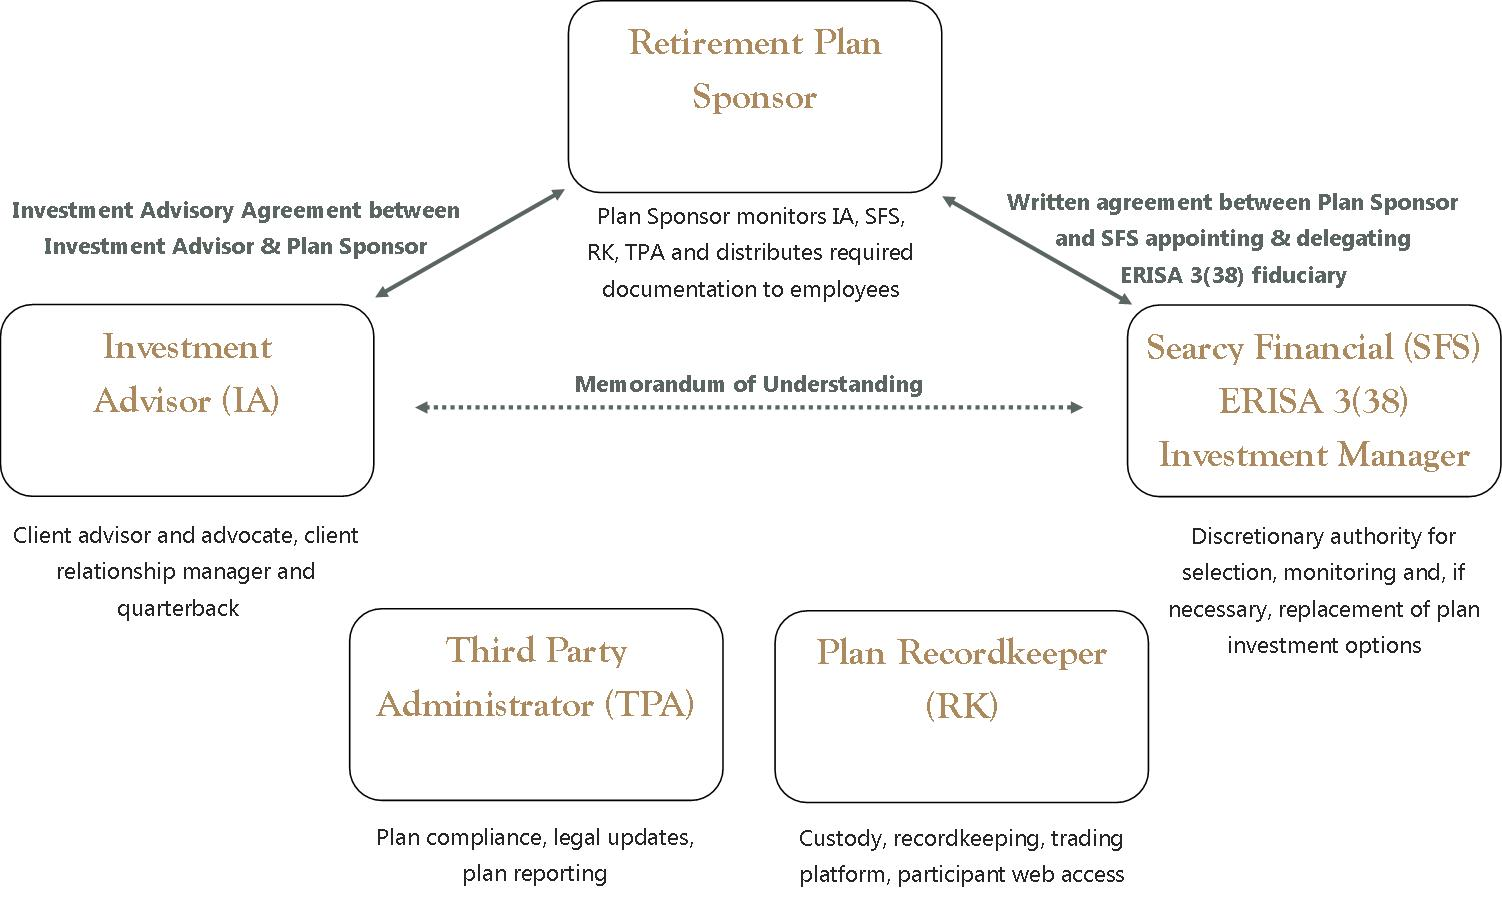 RetirementPlans - Mitigating Risk with a 3-38 Investment Manager - FiduciaryOutsourcingModel